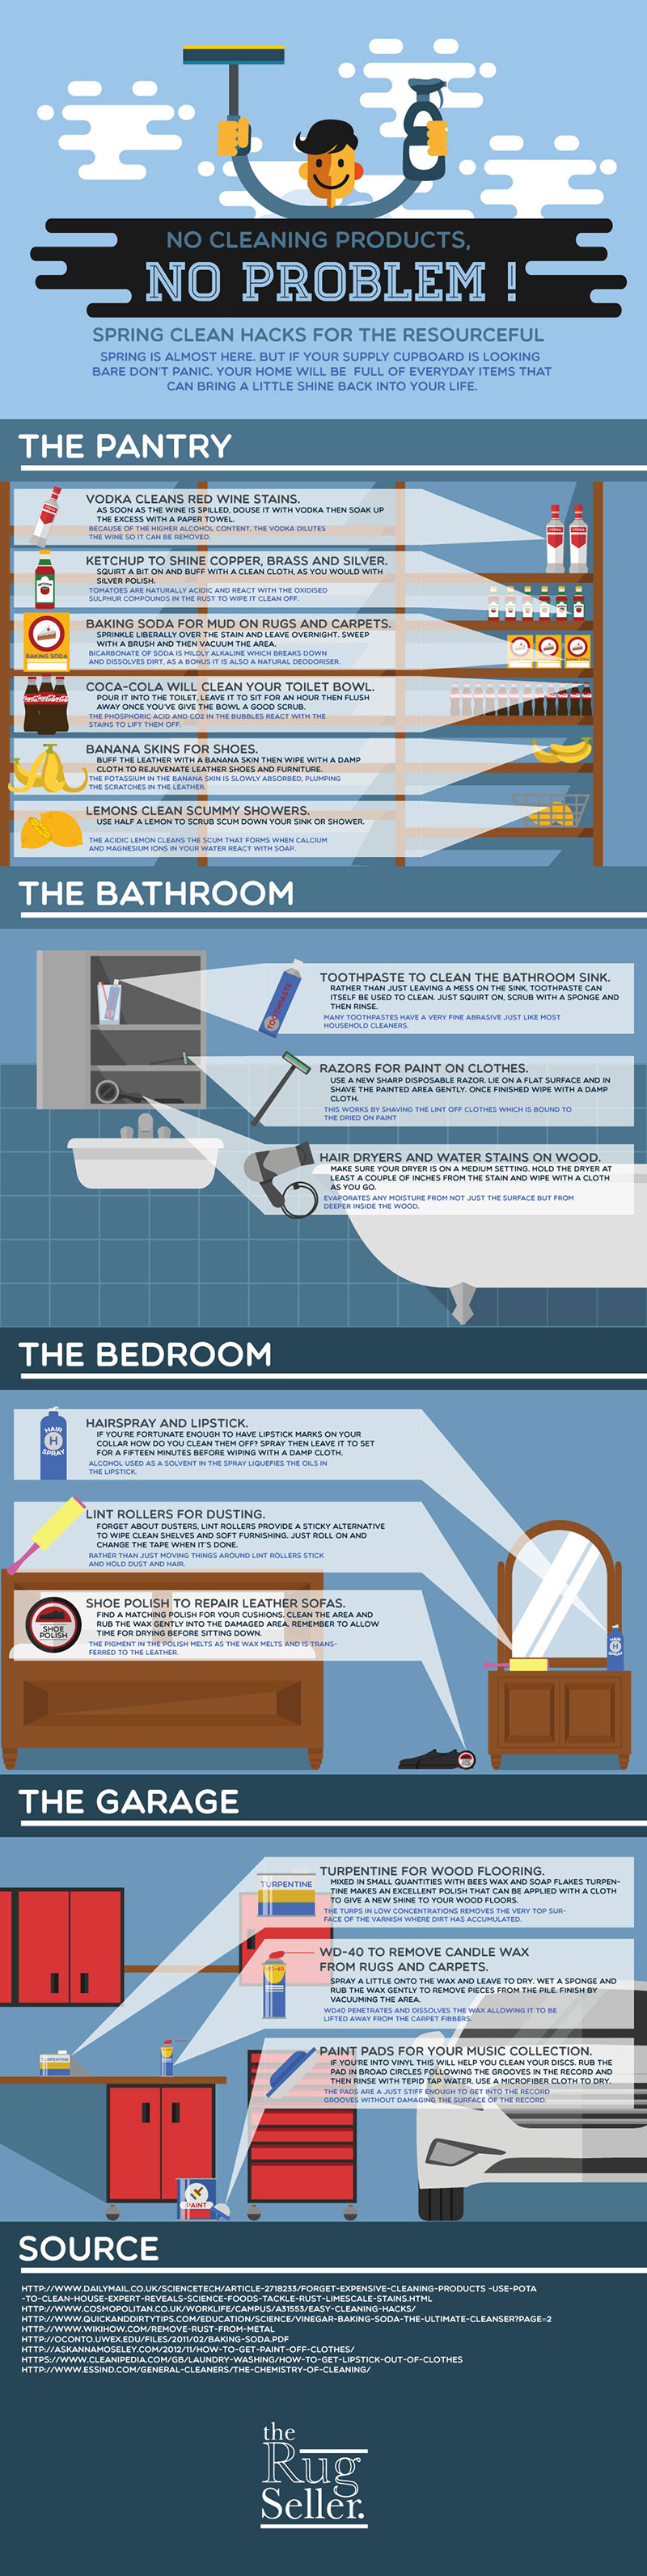 spring-cleaning-hacks-infographic